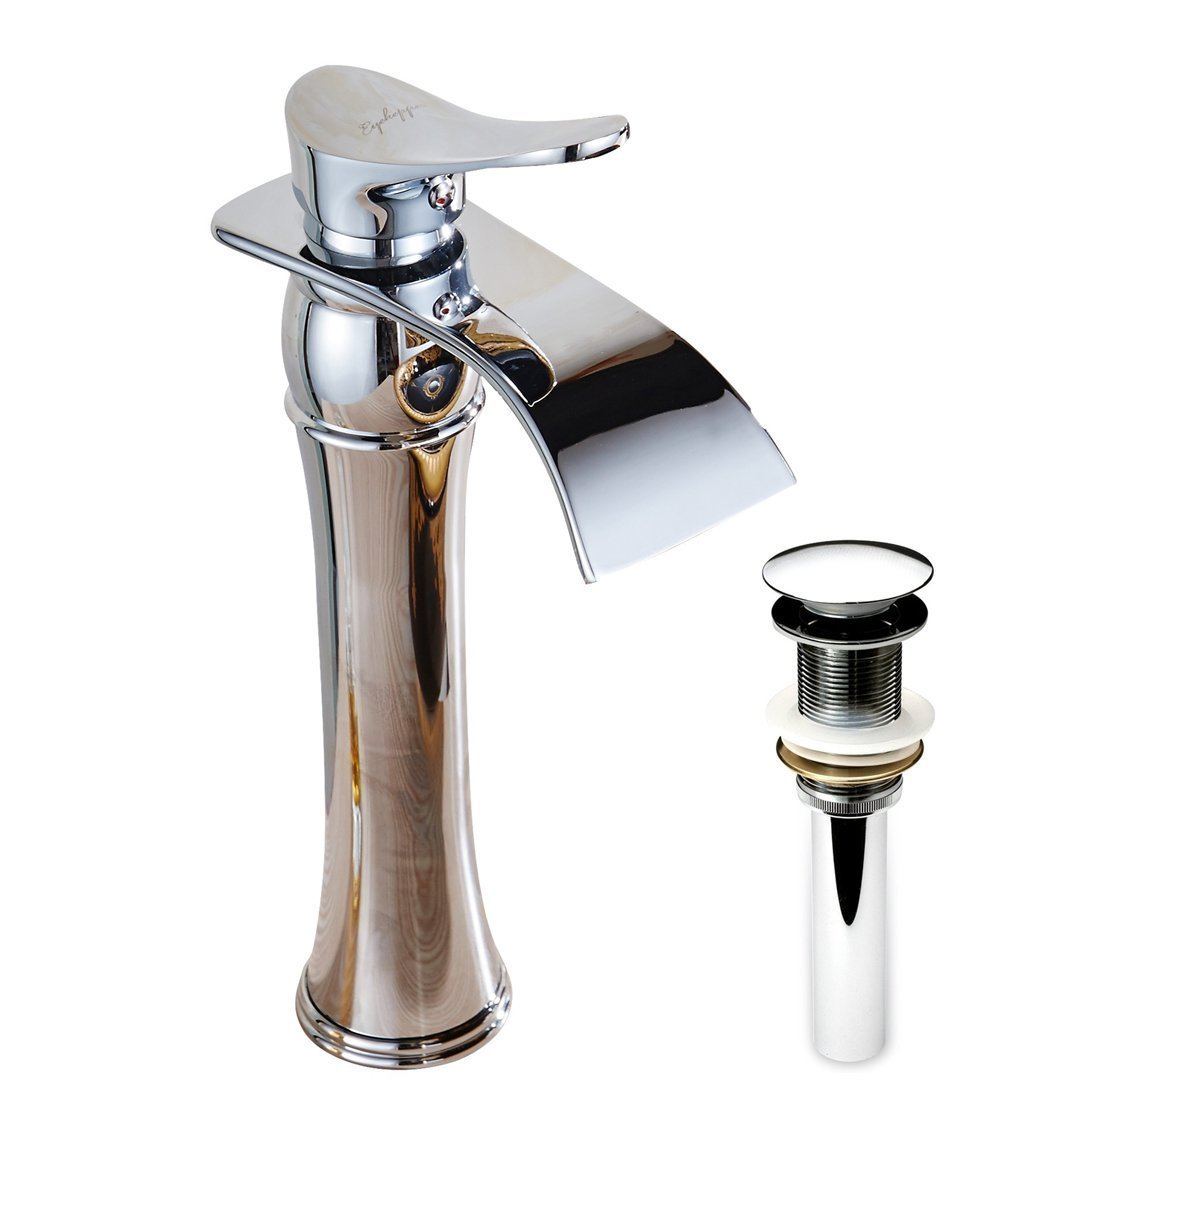 Alajuela Deck Mounted Single handle Water Fall Bathroom Sink Faucet